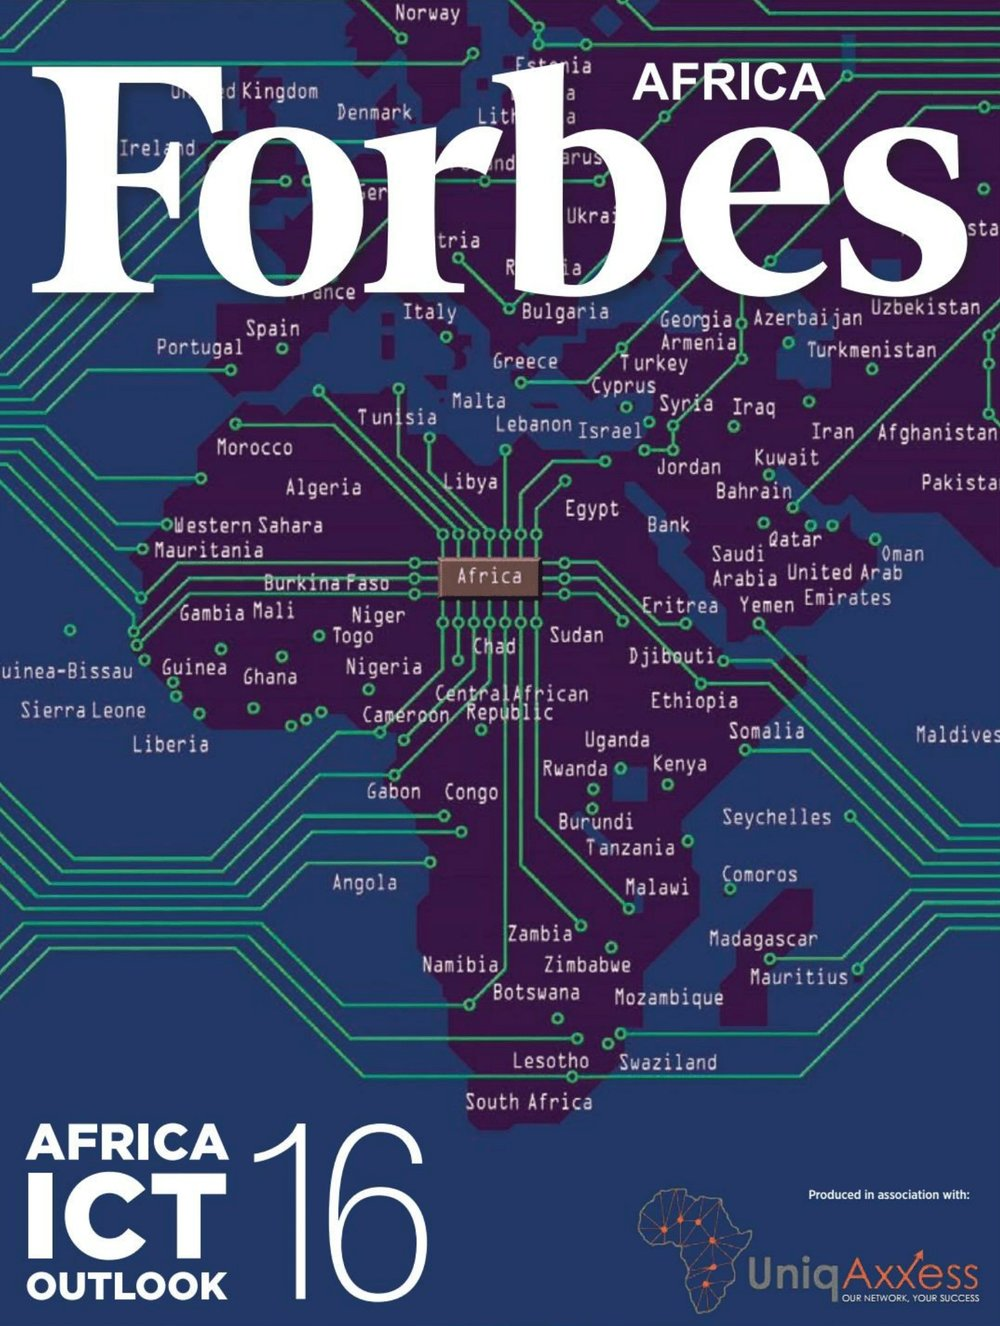 Forbes Africa ICT Outlook 16-17.jpg